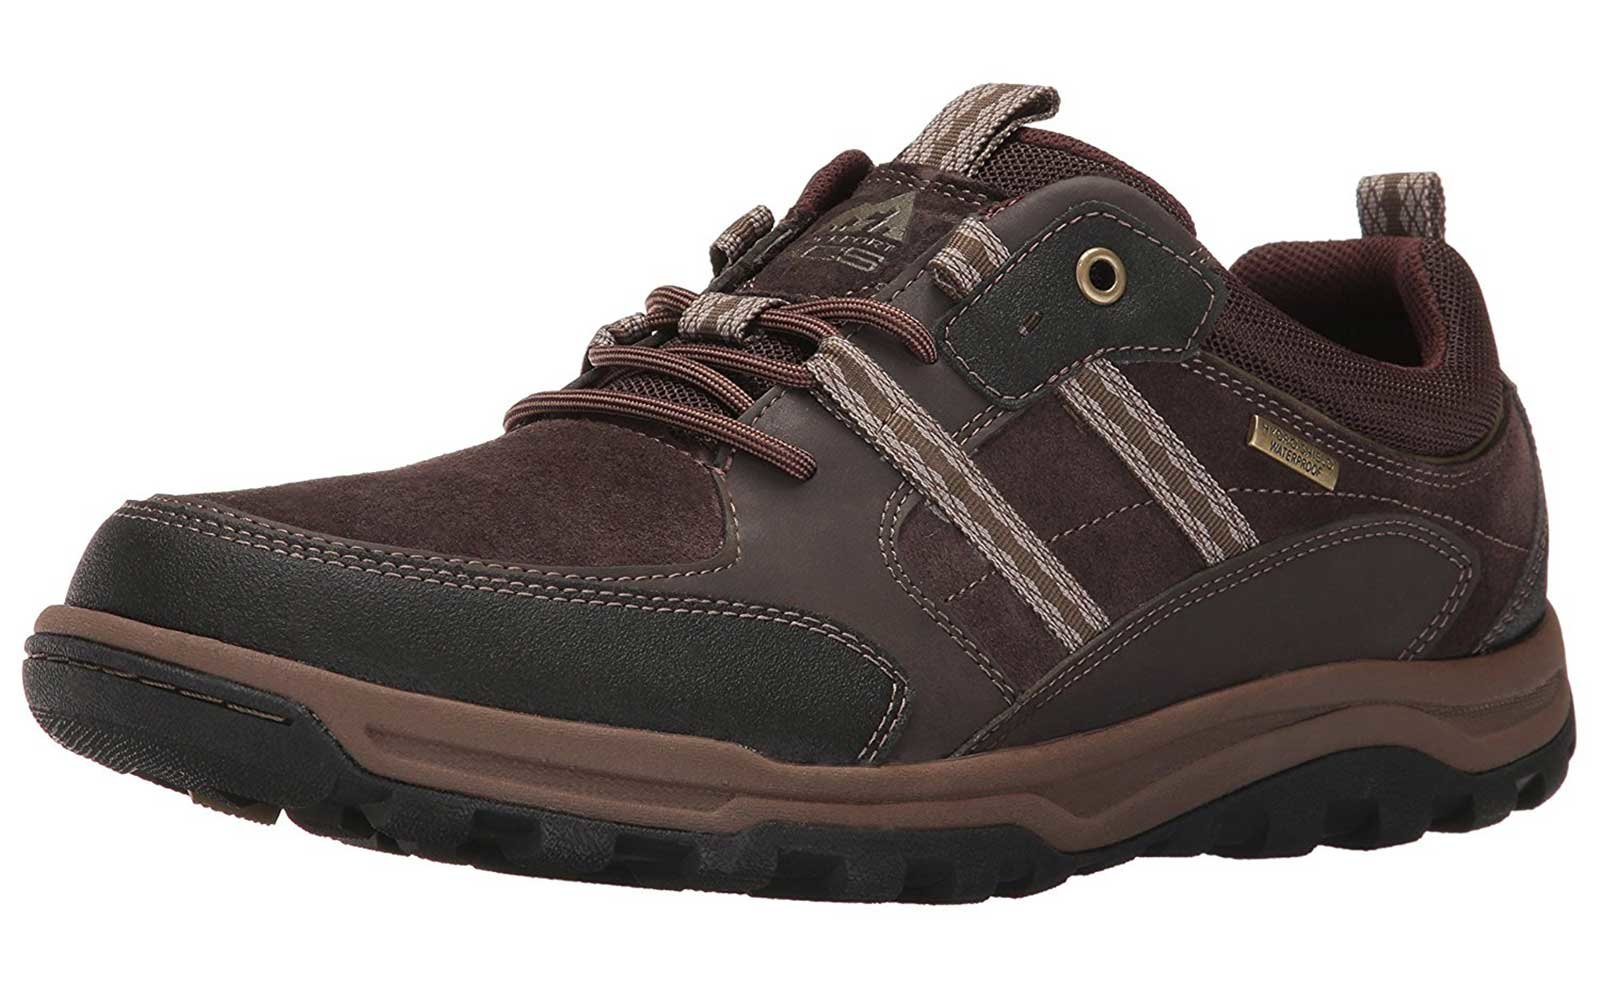 Rockport Waterproof Walking Shoes